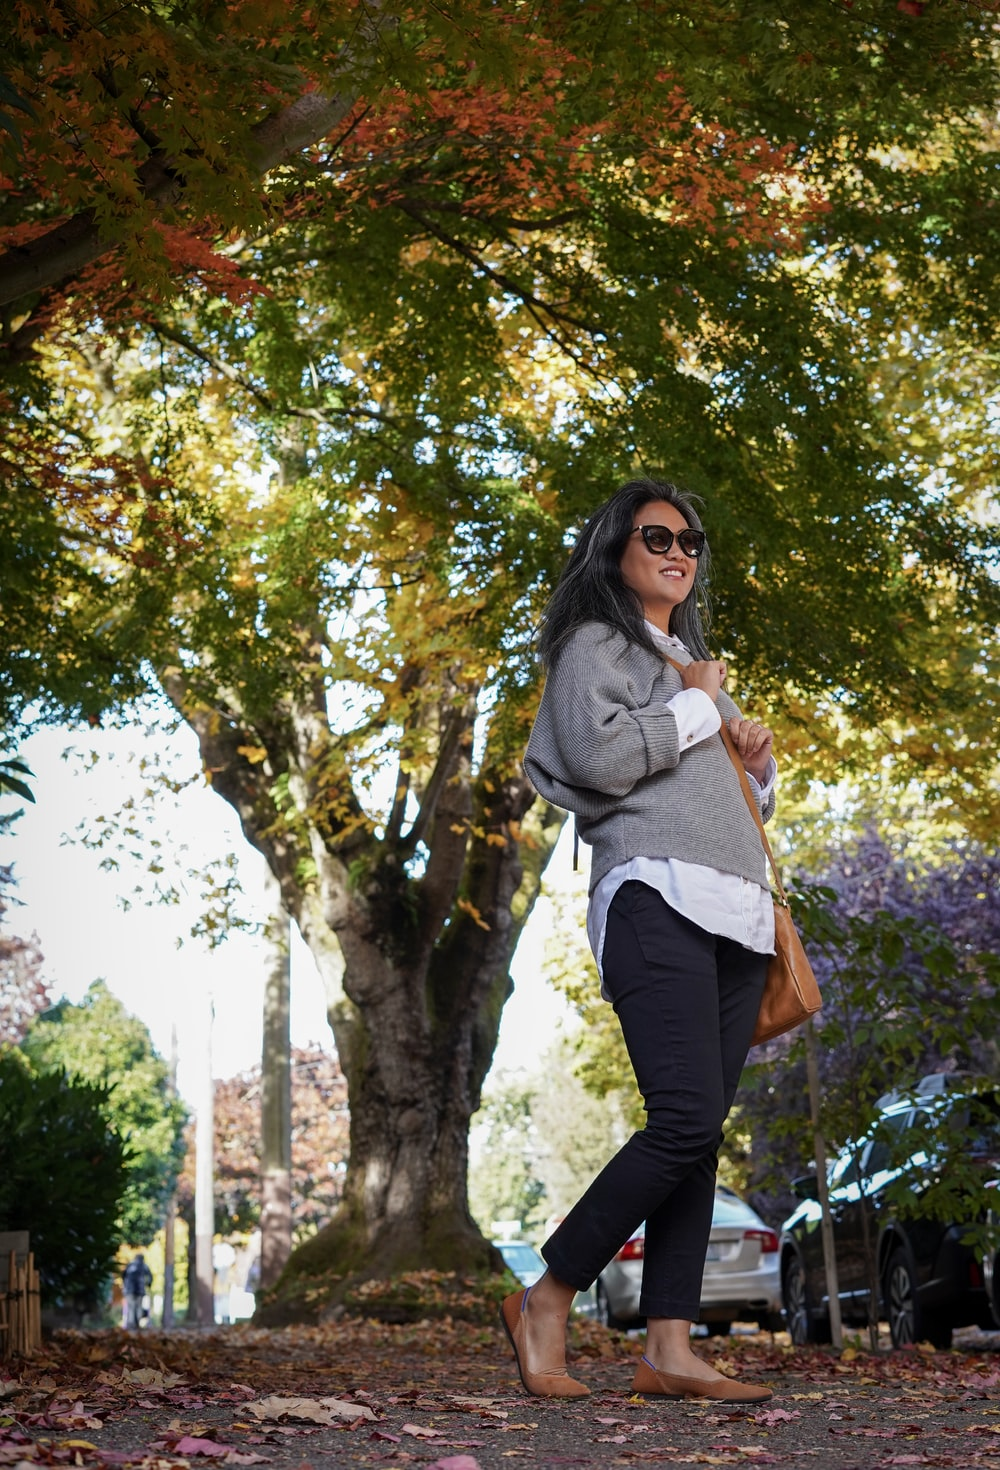 woman in gray long sleeve shirt and black pants standing under green tree during daytime